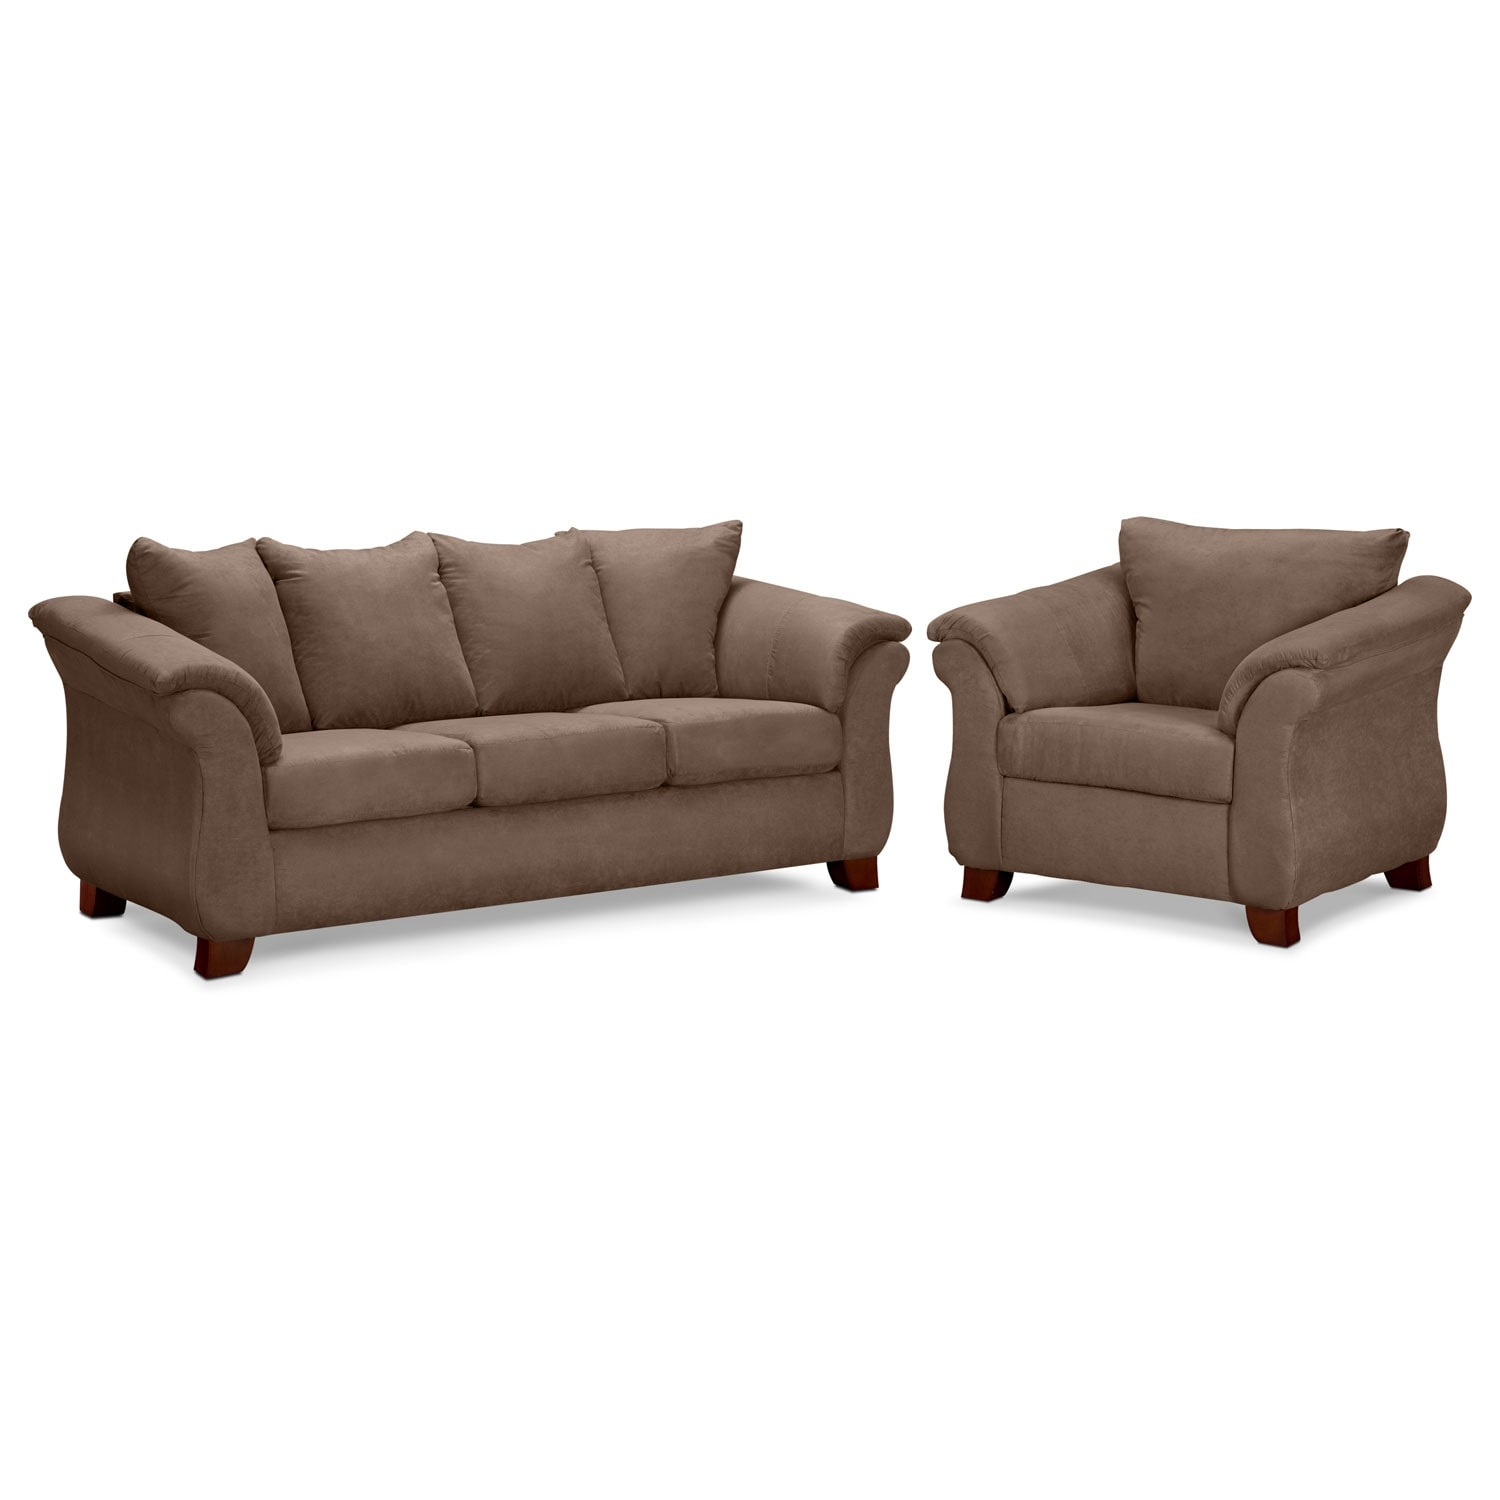 Adrian Sofa And Chair Set  Taupe  Value City Furniture